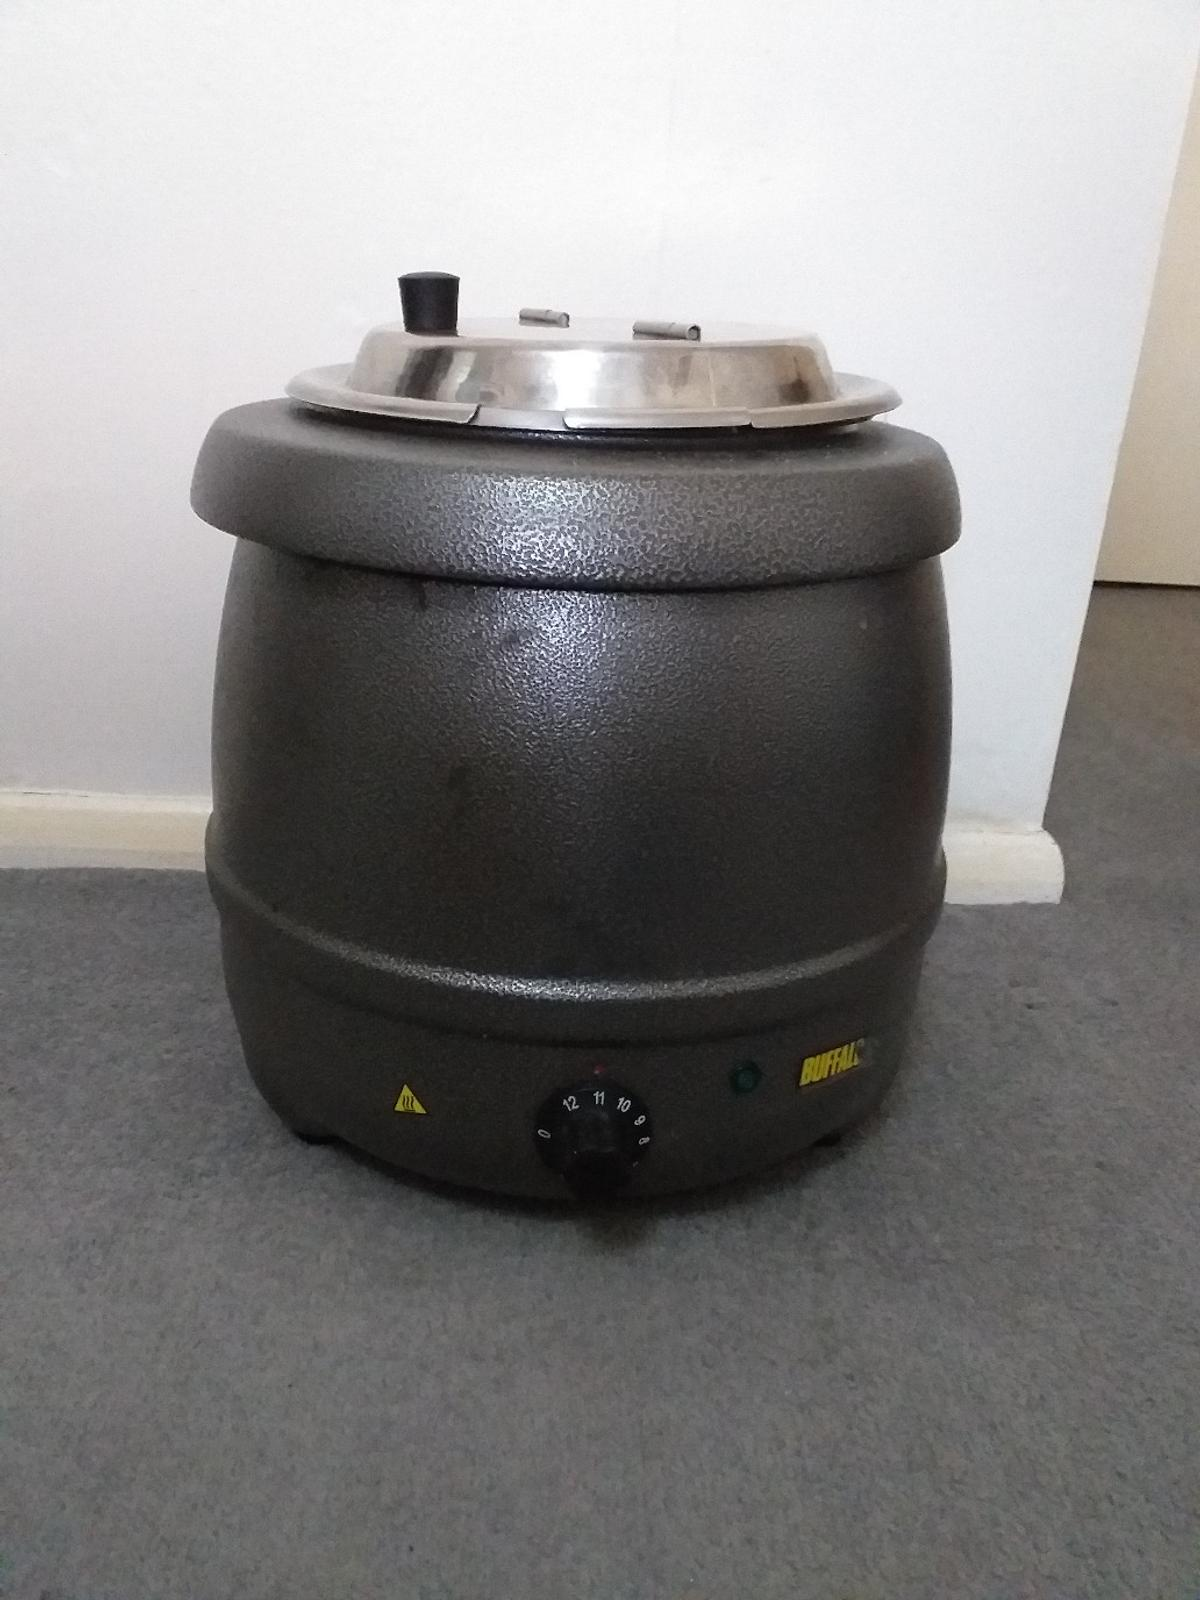 Nearly new, with instructions but no box. 10litre soup warmer, not to be used for cooking soup.  Great for family gatherings, small cafe or restaurant. removable inner container for easy cleaning.